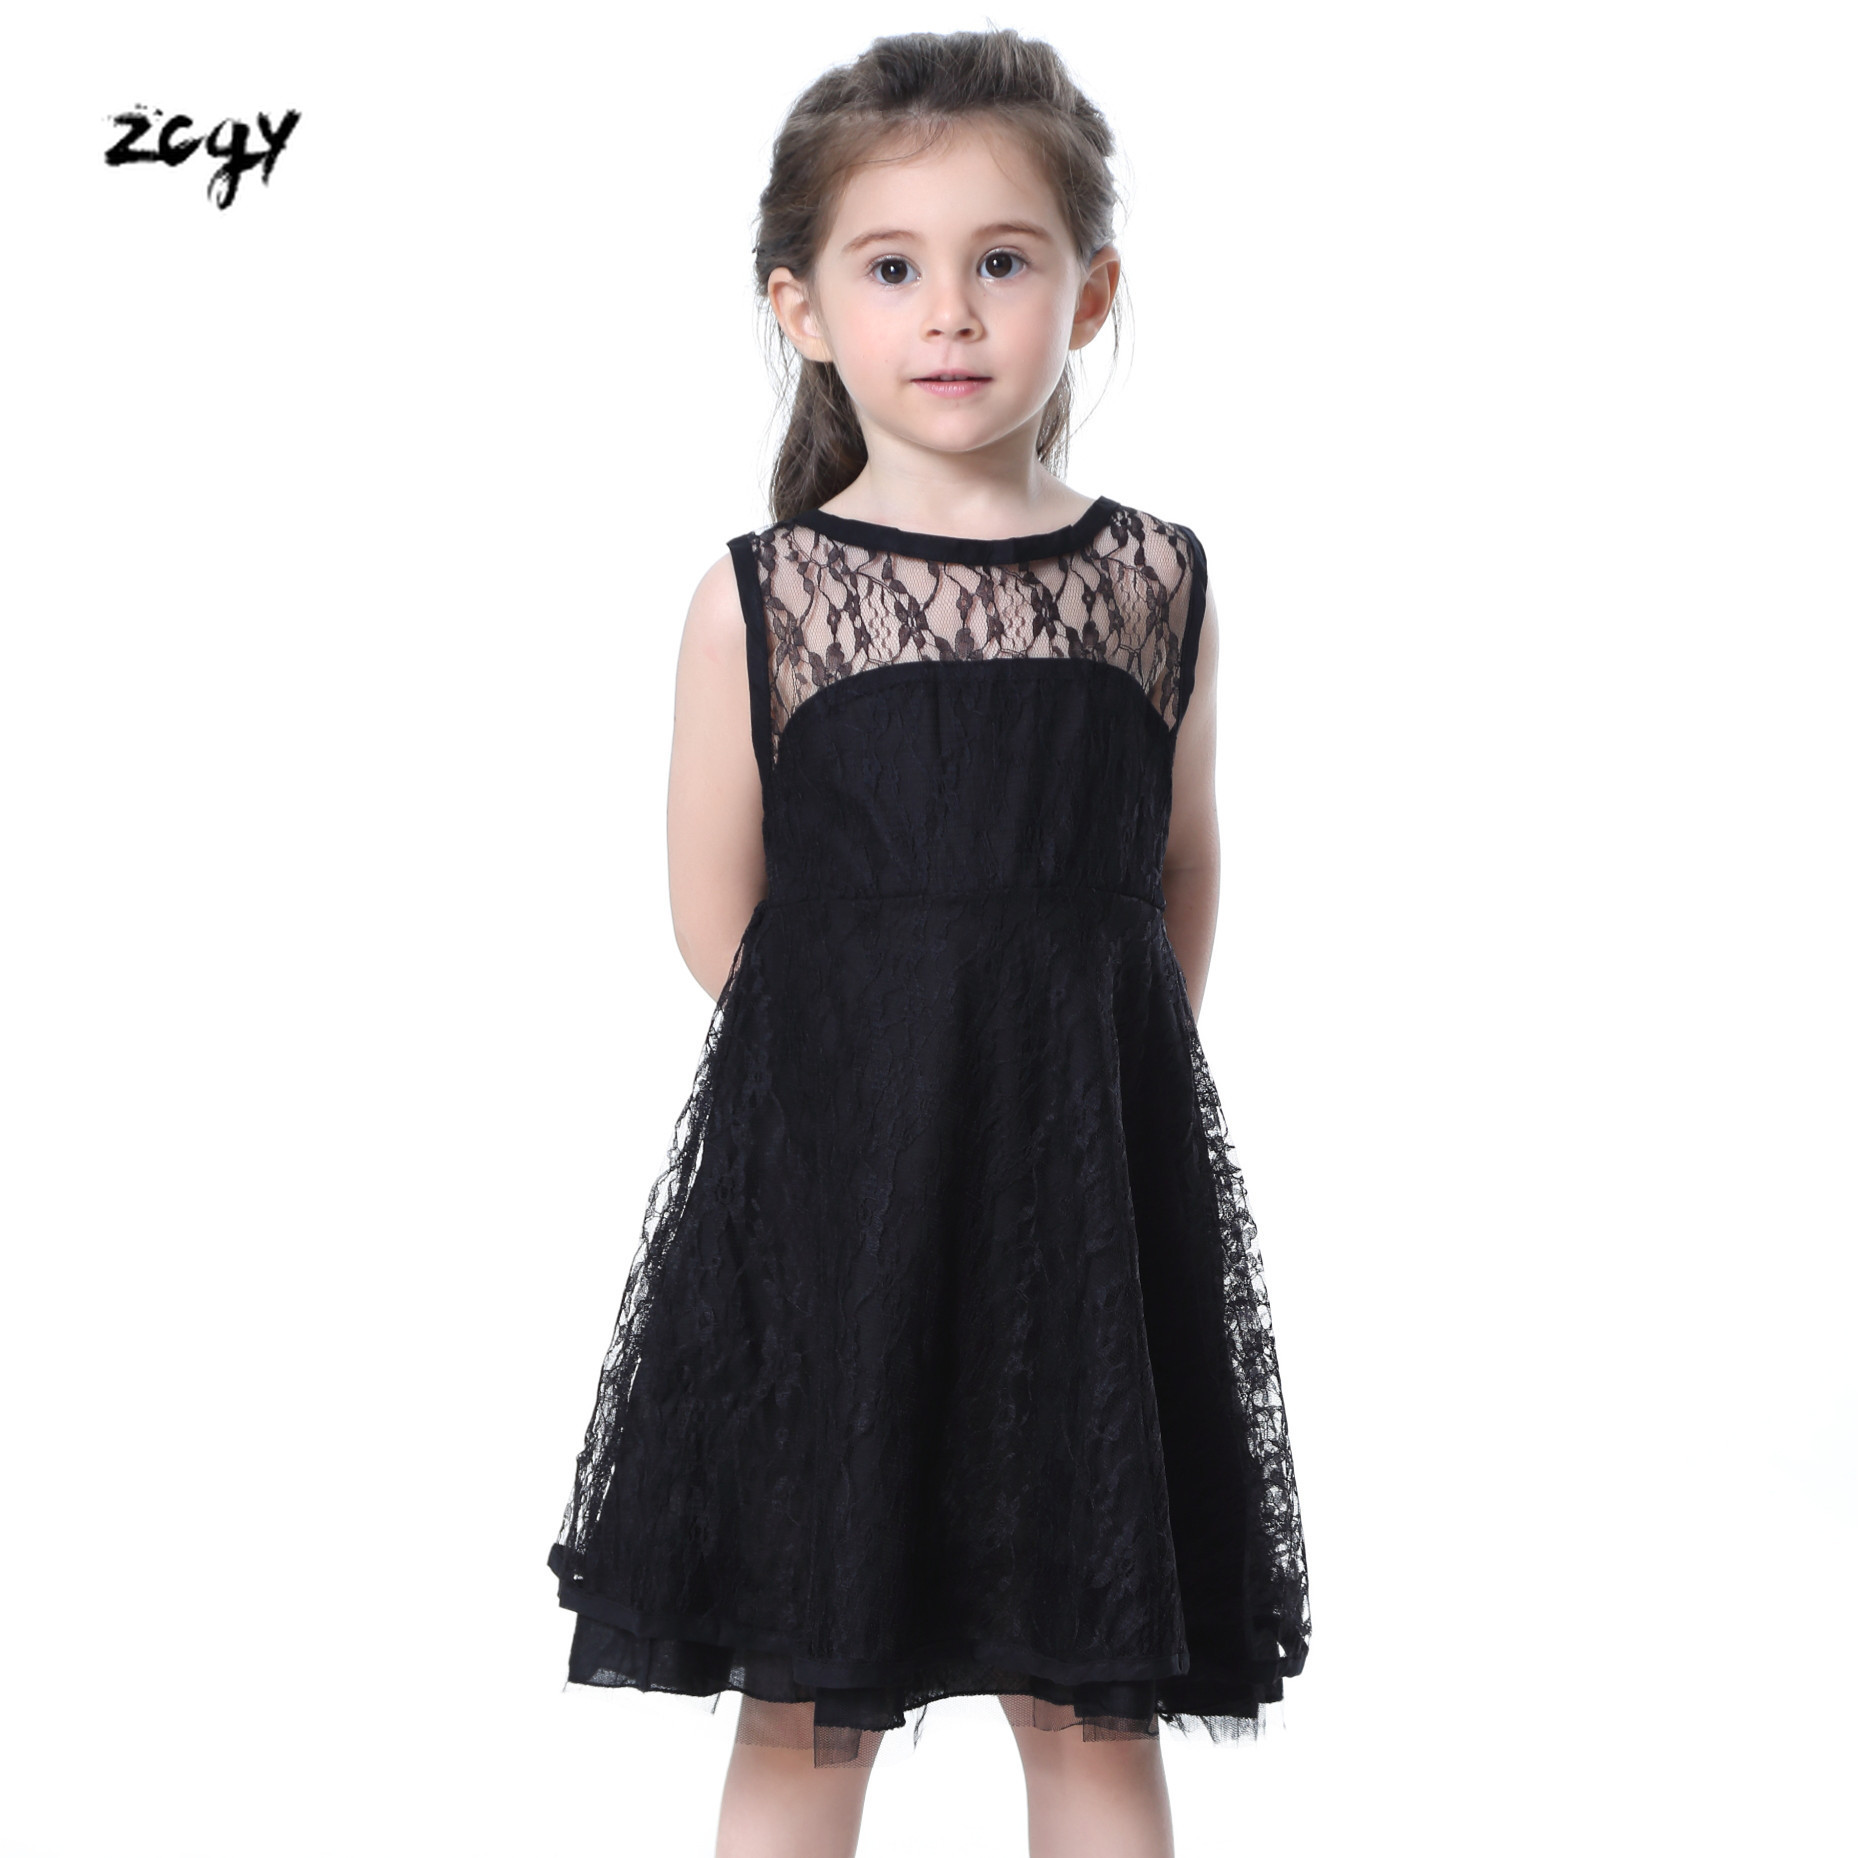 Summer Dresses For Girl 2019 Girls Clothing White Beading Princess Party Dress Elegant Ceremony 4-12Years Teenage Girl Costume